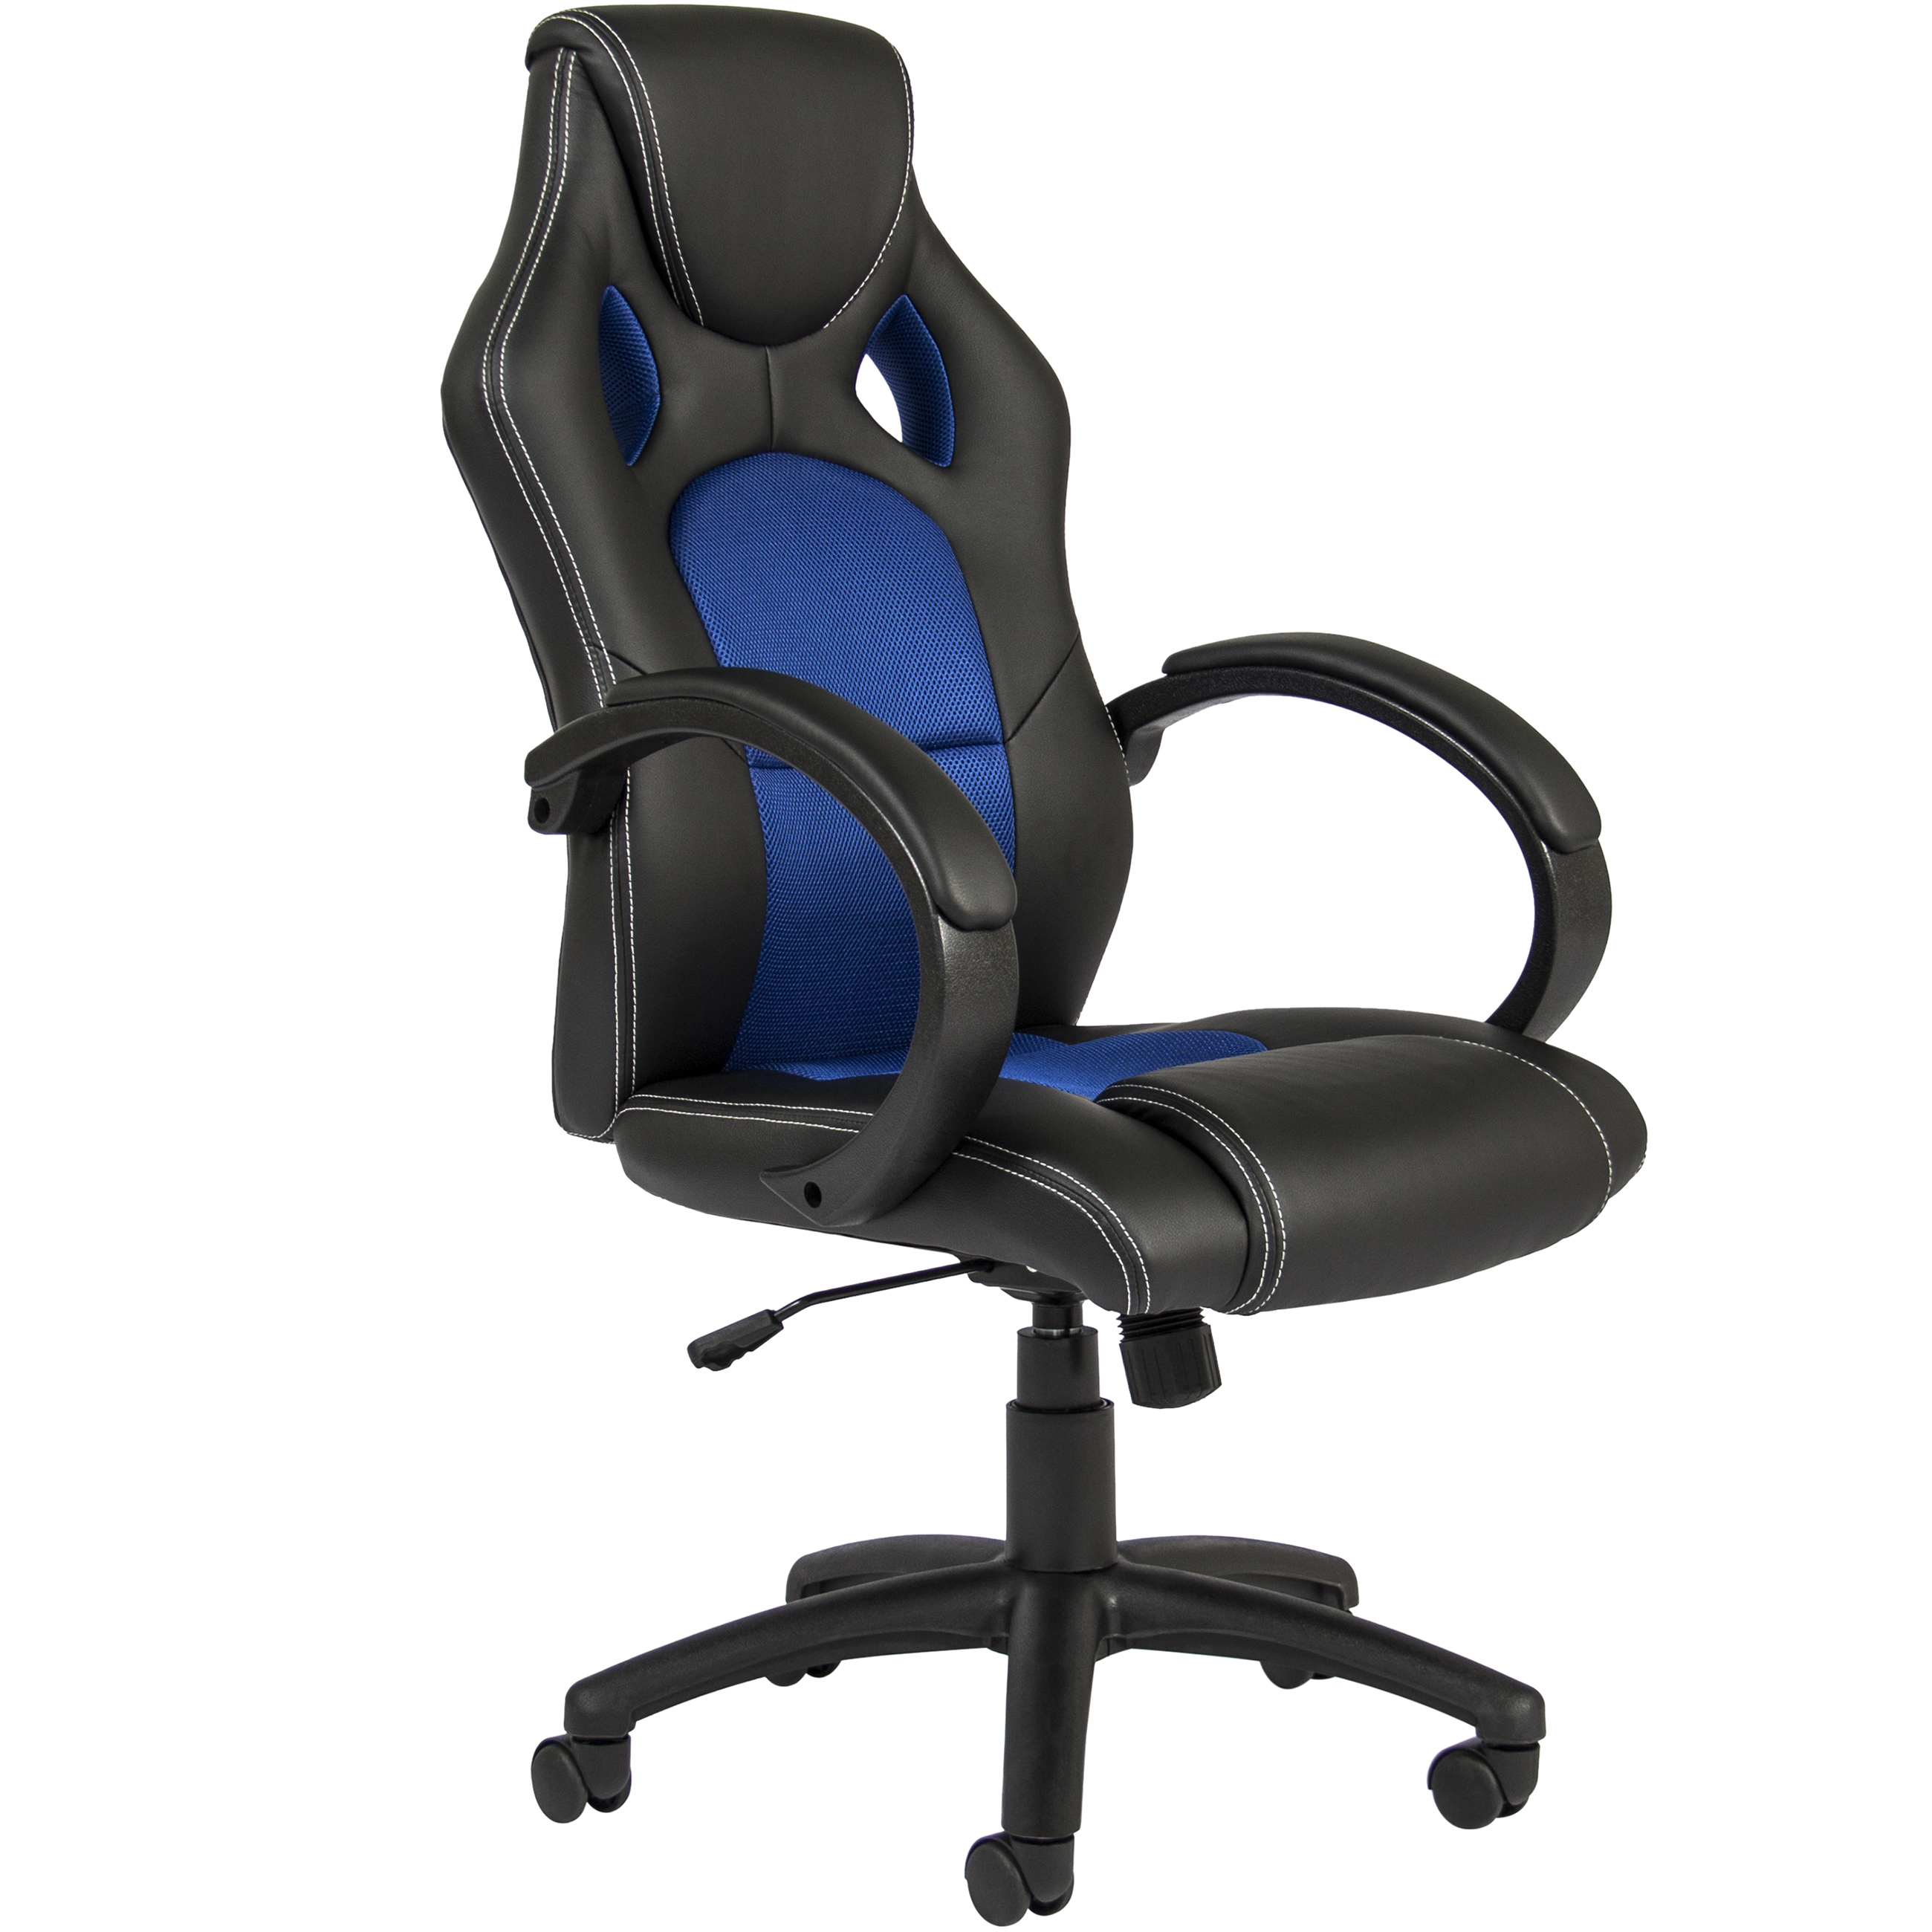 Best Choice Products Executive Padded PU Leather Racing Style Design Swivel Office Chair for Gaming, Work w/ High-Back Seat, Armrests, Tilt & Height Adjustment - Blue